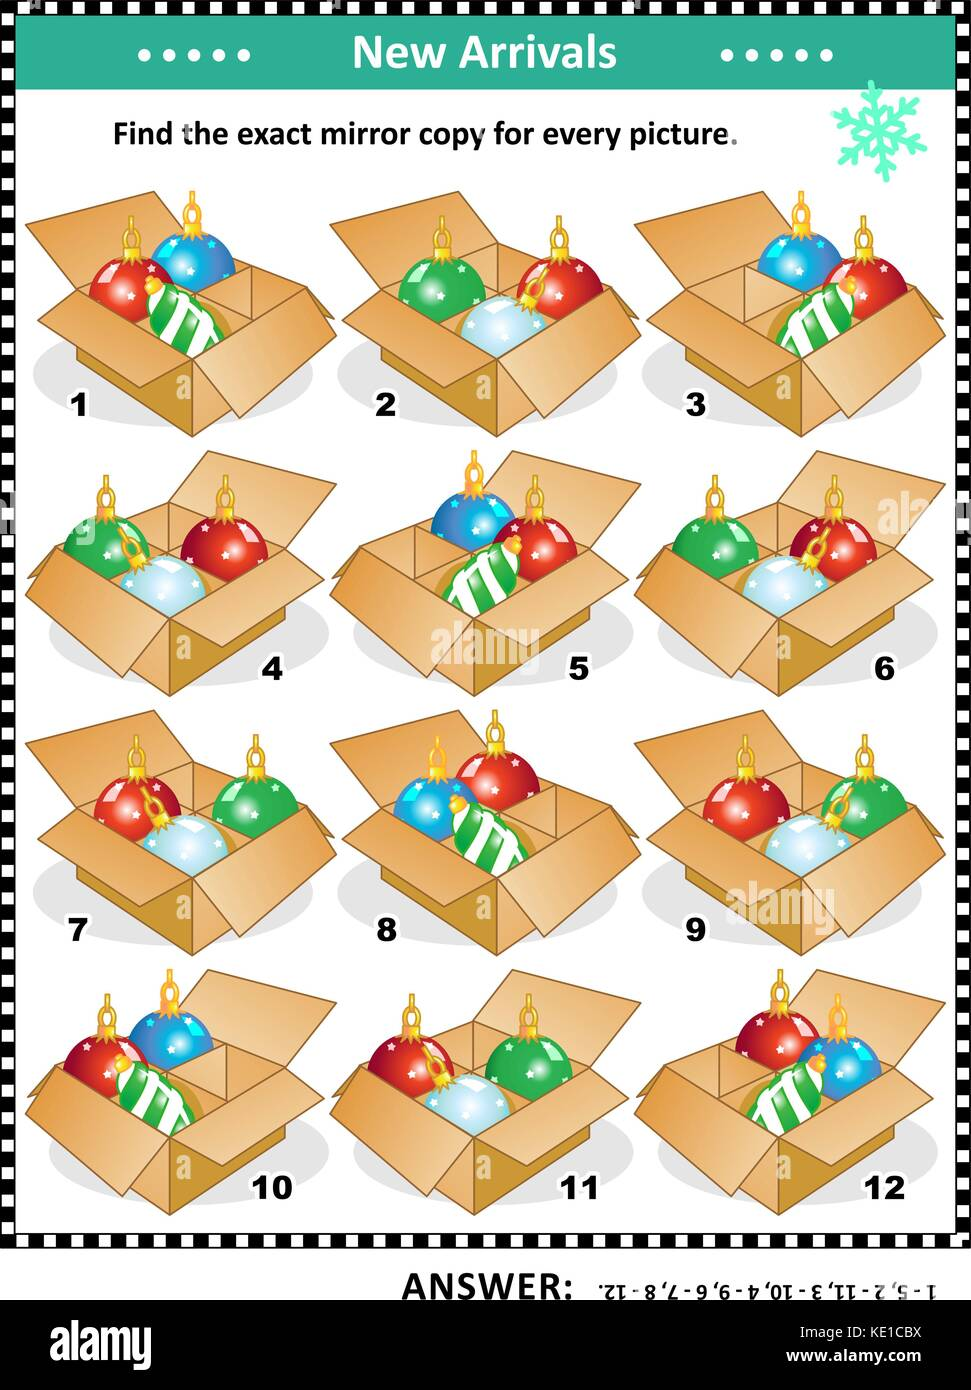 Christmas or New Year themed visual puzzle with packaged ornaments: Match the pairs - find the exact mirrored copy - Stock Image